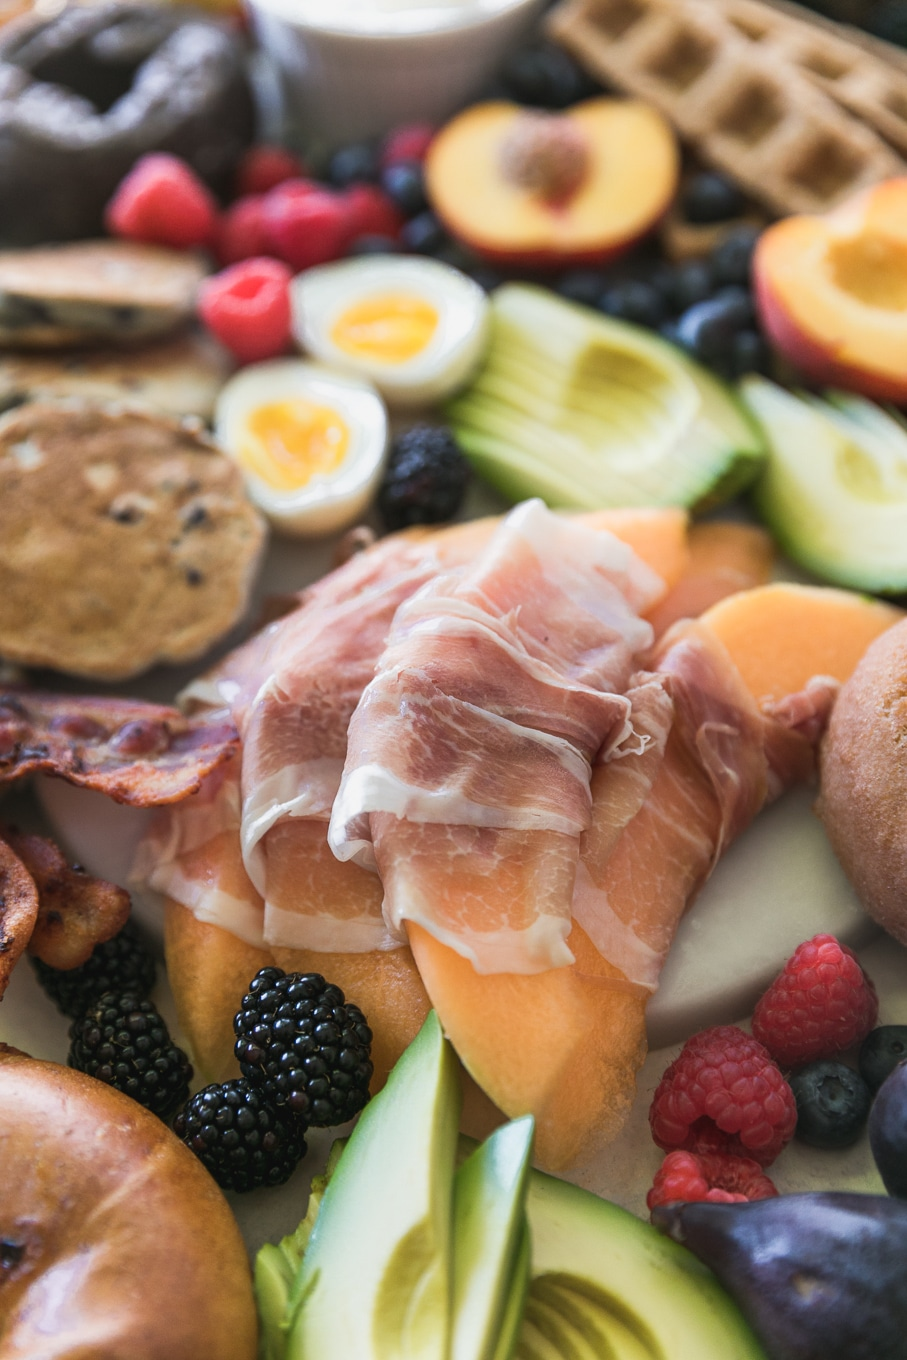 Close up shot of prosciutto wrapped melon, sliced avocado, soft boiled eggs, berries, mini pancakes, and fruit